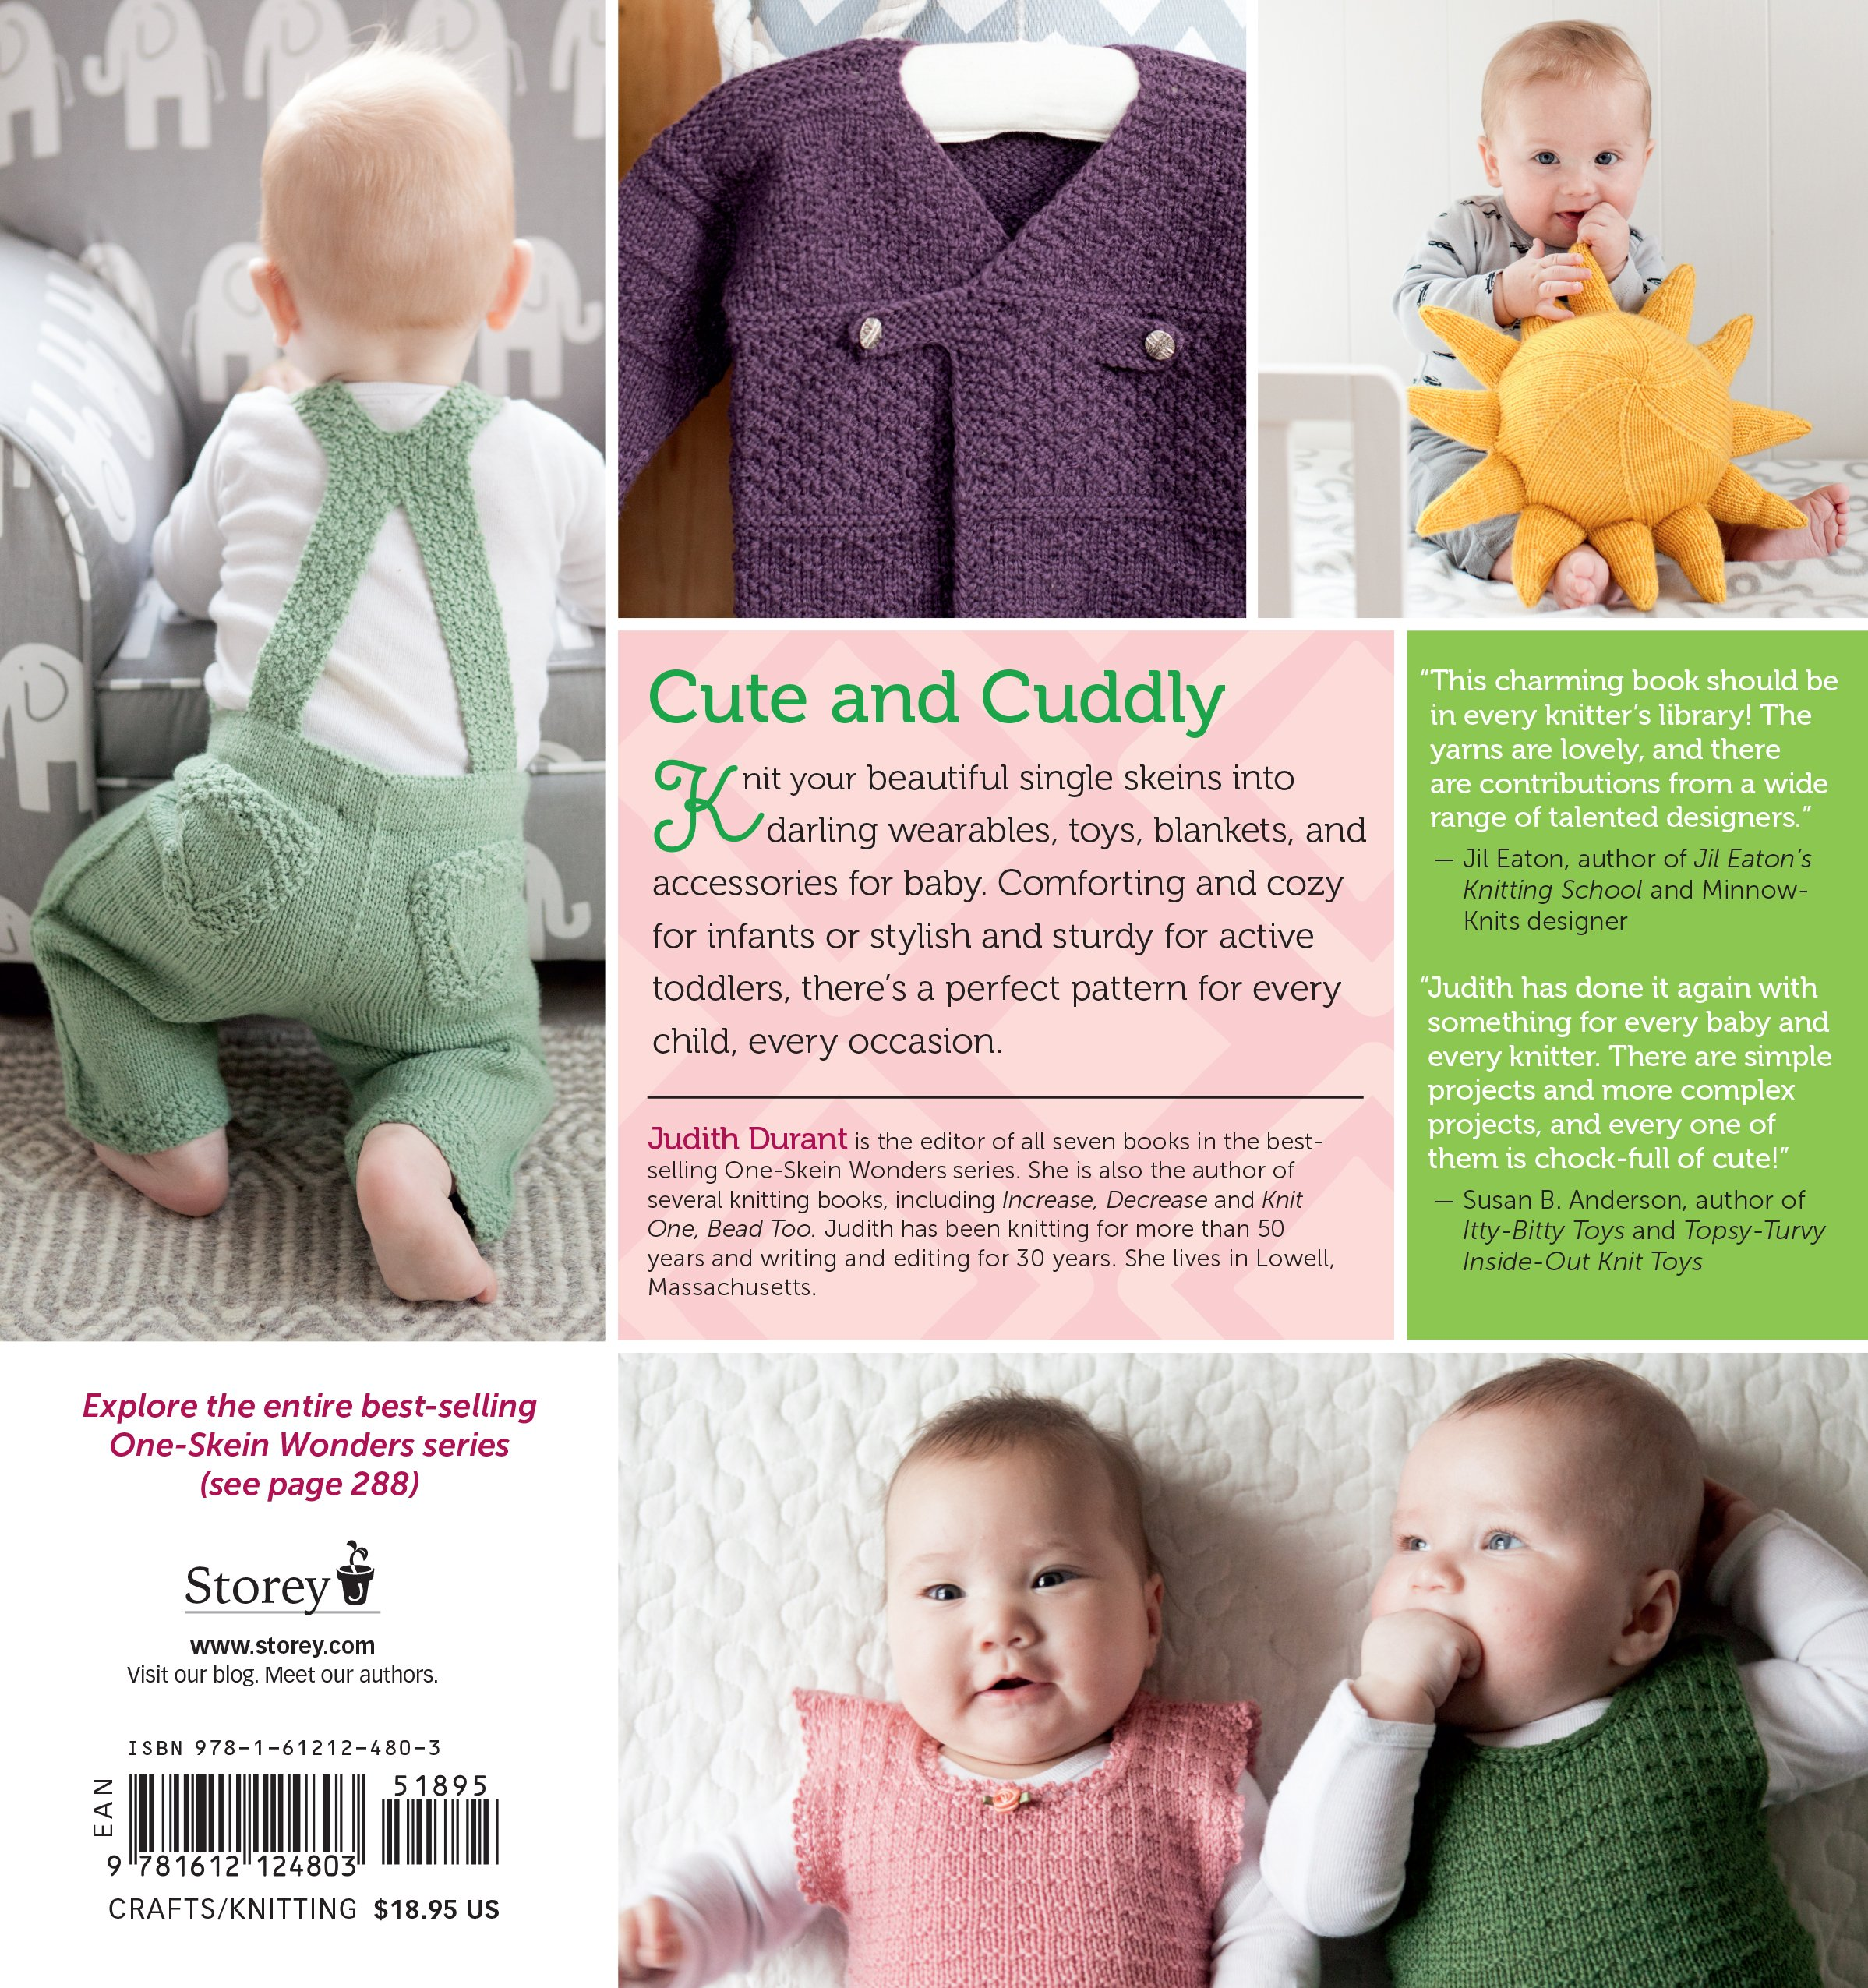 Amazon.com: One-Skein Wonders® for Babies: 101 Knitting Projects for ...